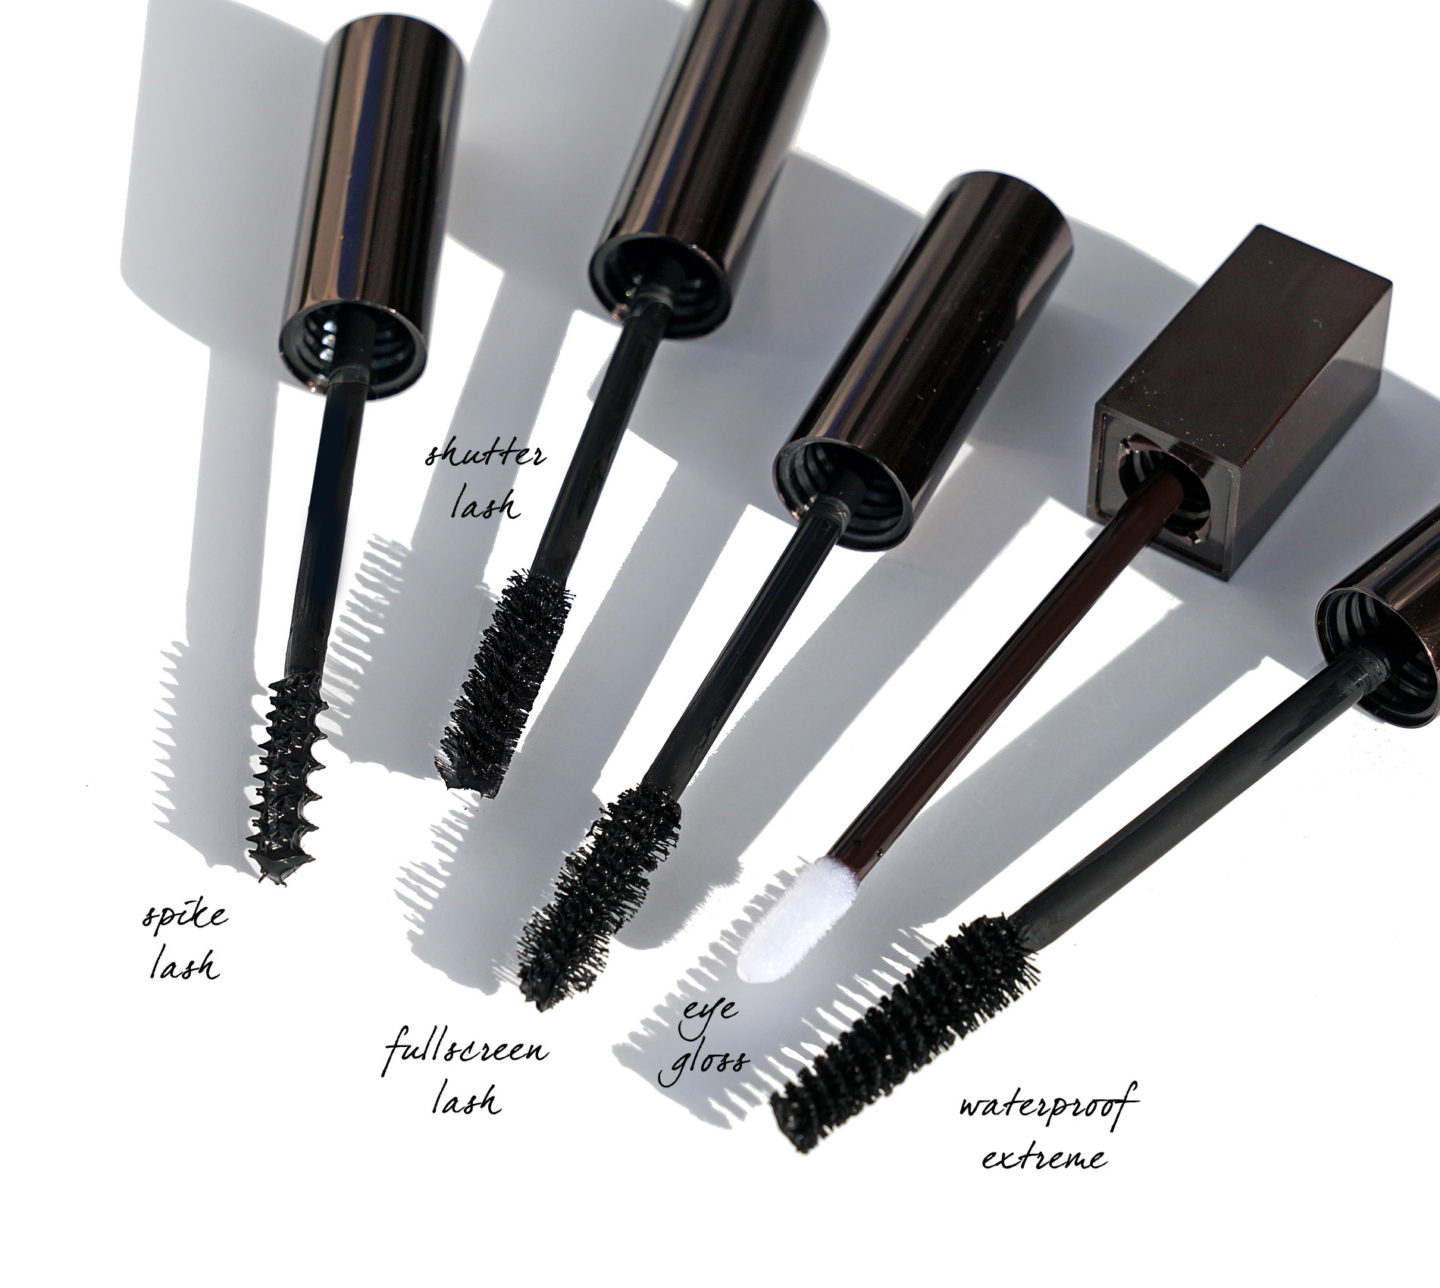 Tom Ford Spike Lash, Shutter Lash, Fullscreen Lash Mascara and Eye Gloss